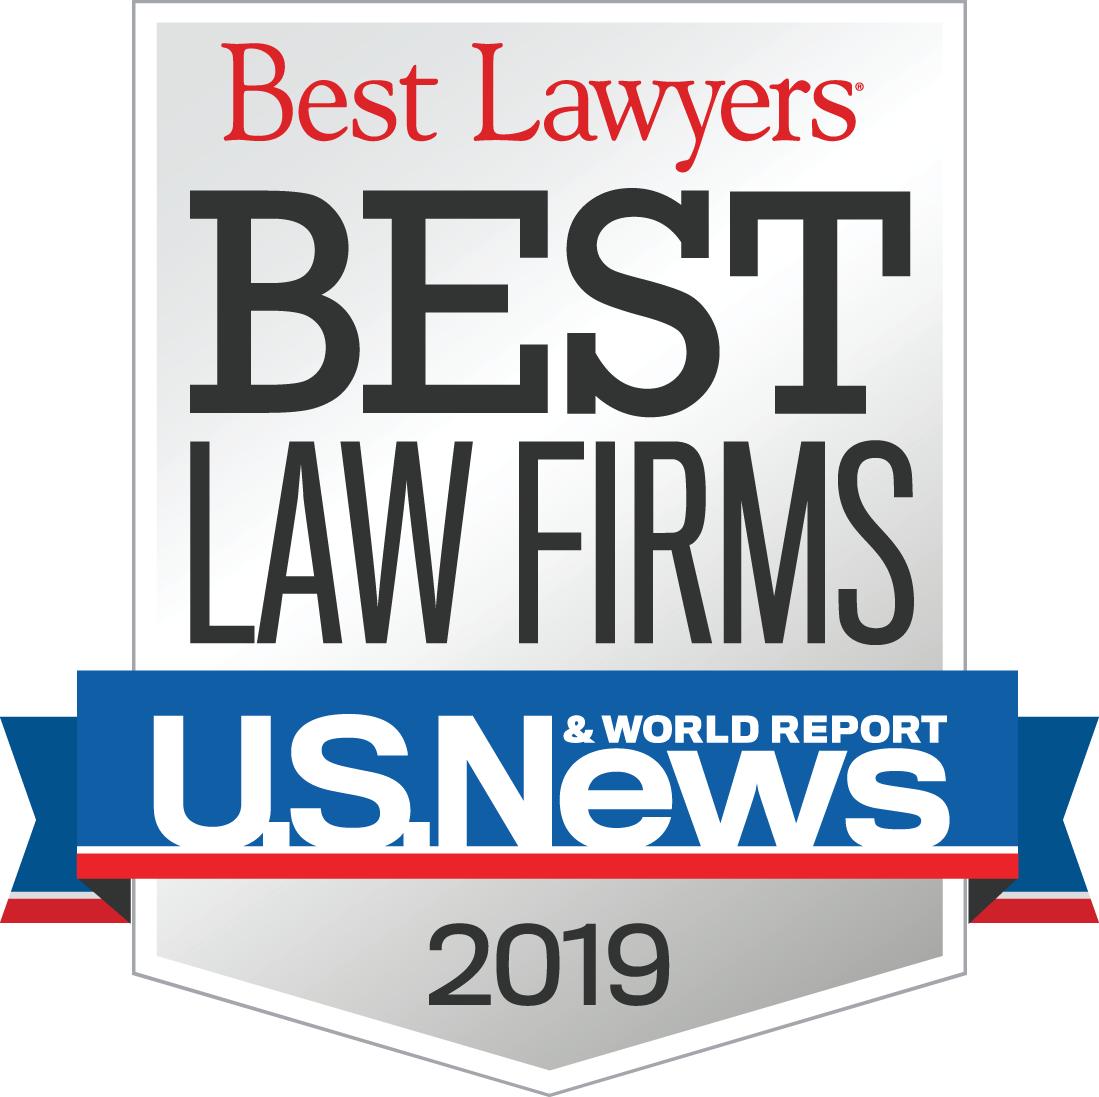 Picture of award given to Michael Pezzulli that reads: Best Lawyers Best Law Firms U.S. News & World Report 2019